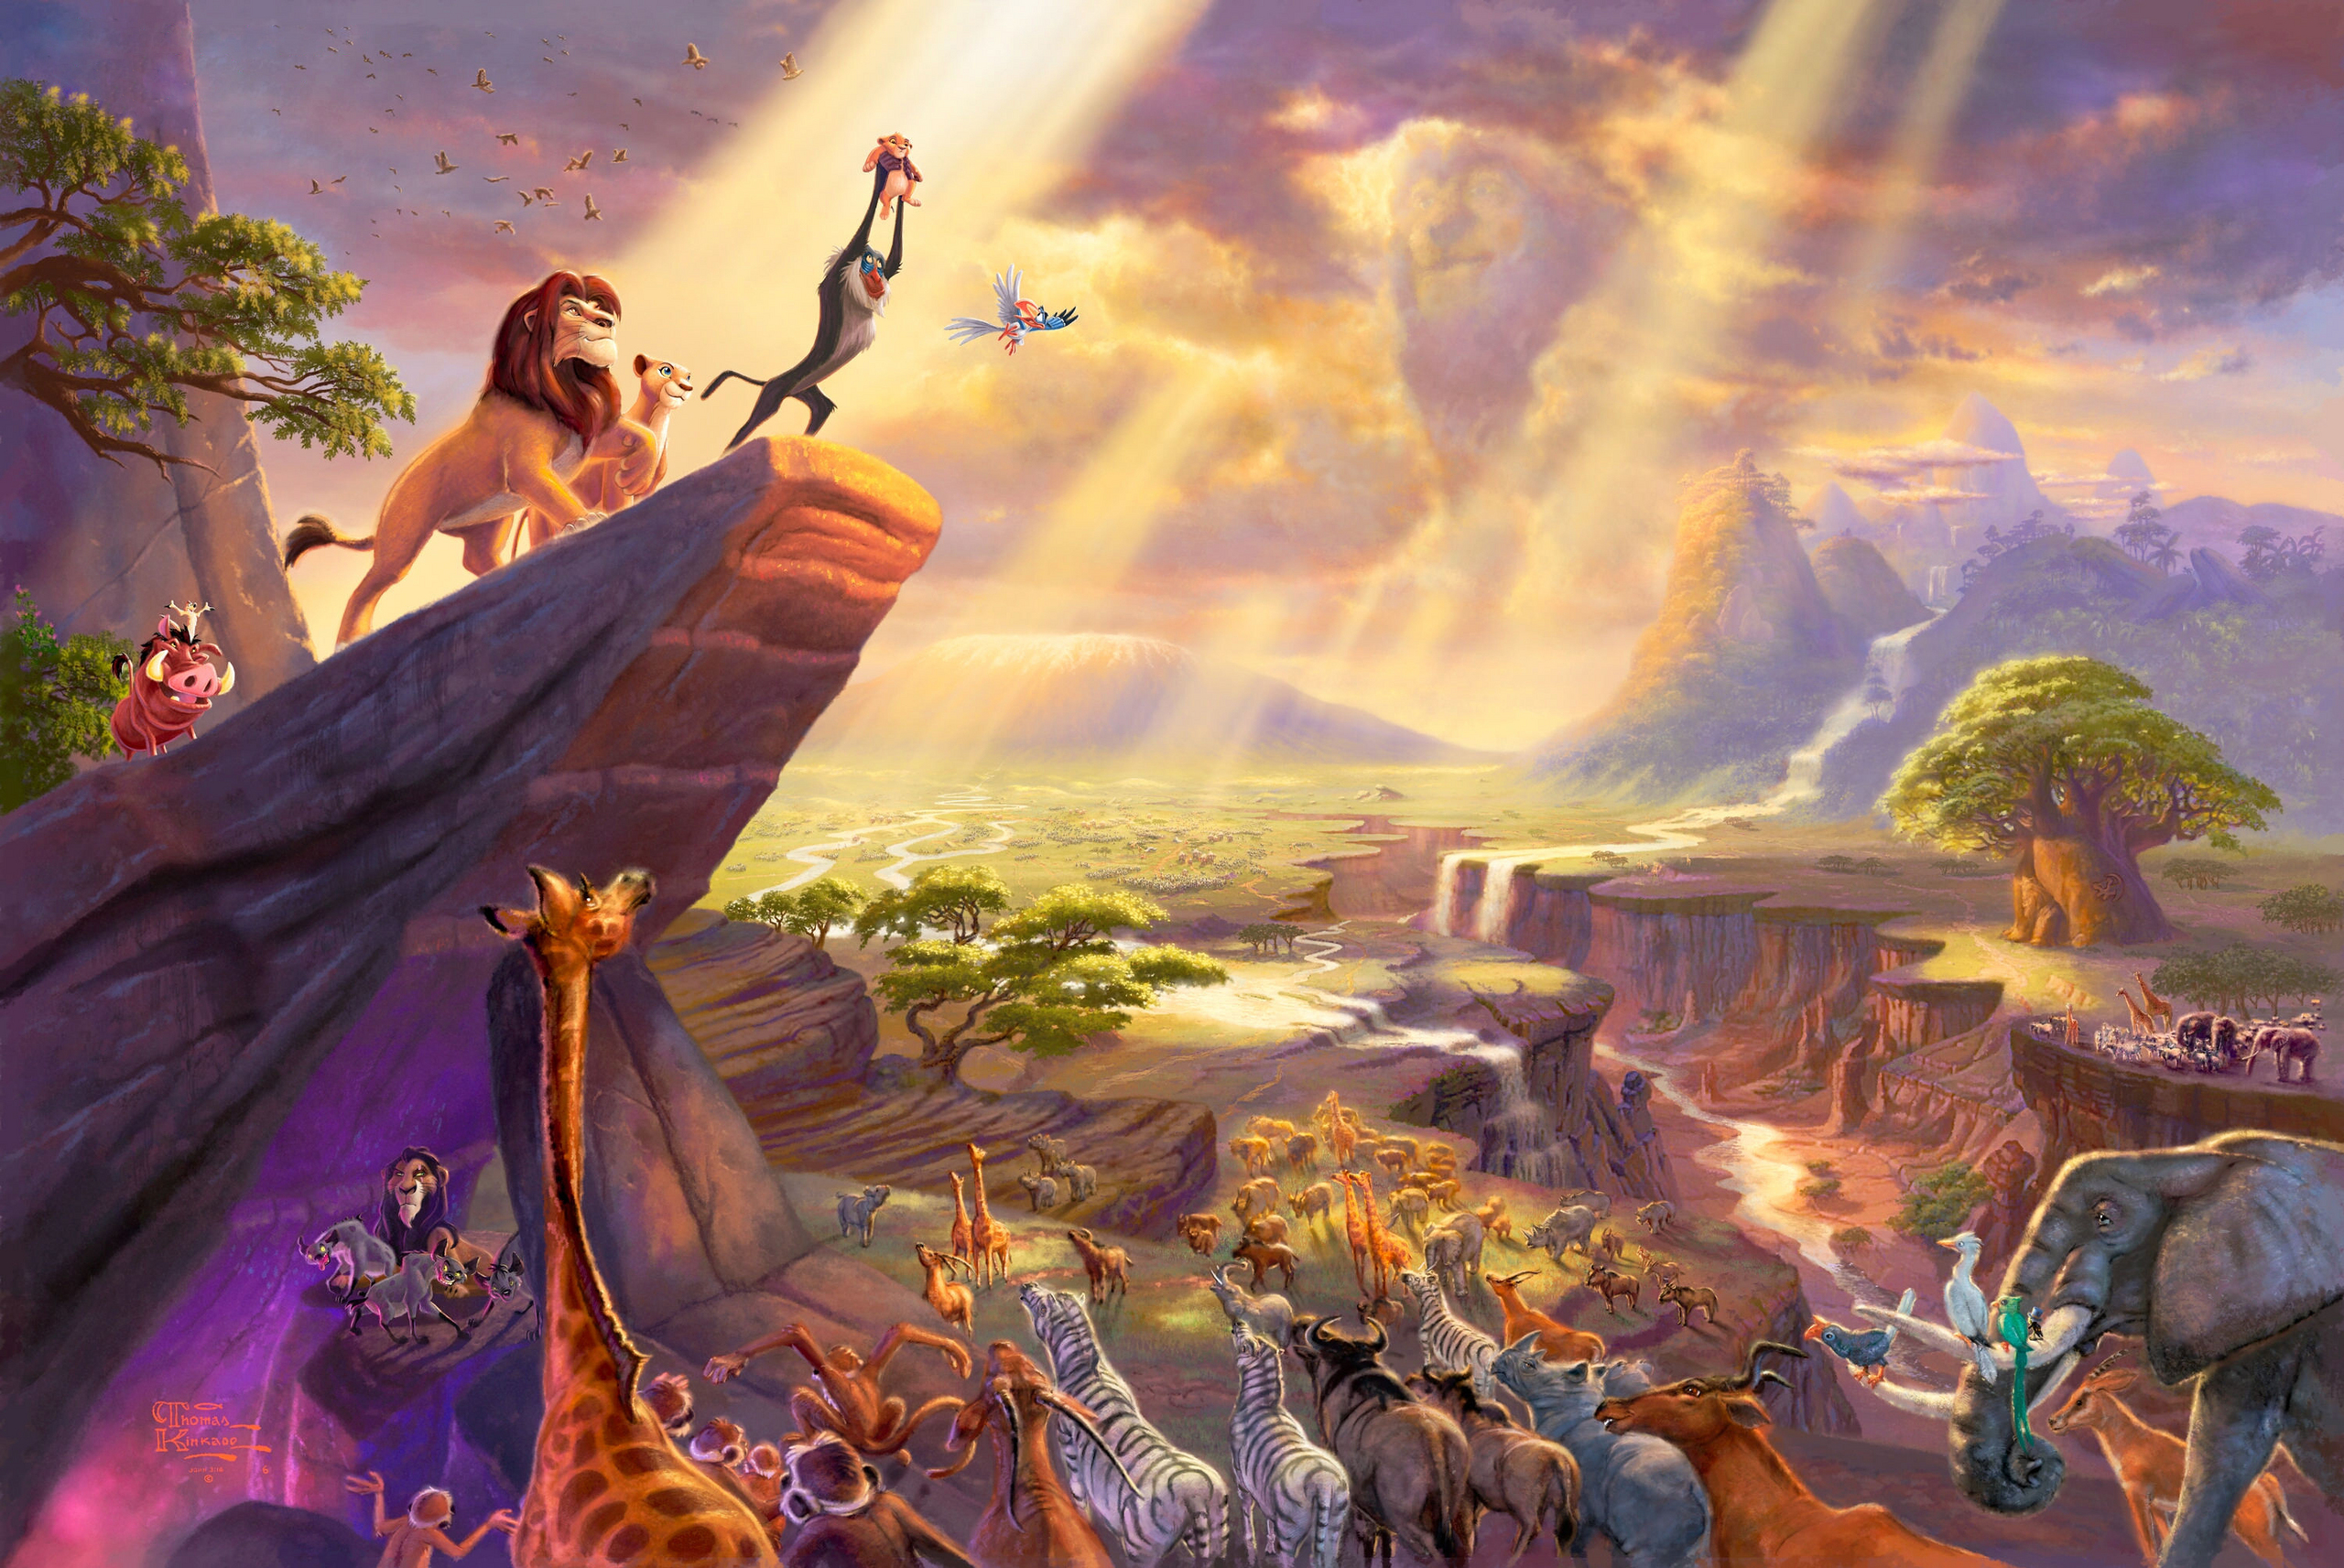 Walt Disney Wallpapers The Lion King walt disney characters 28821899 2560x1713